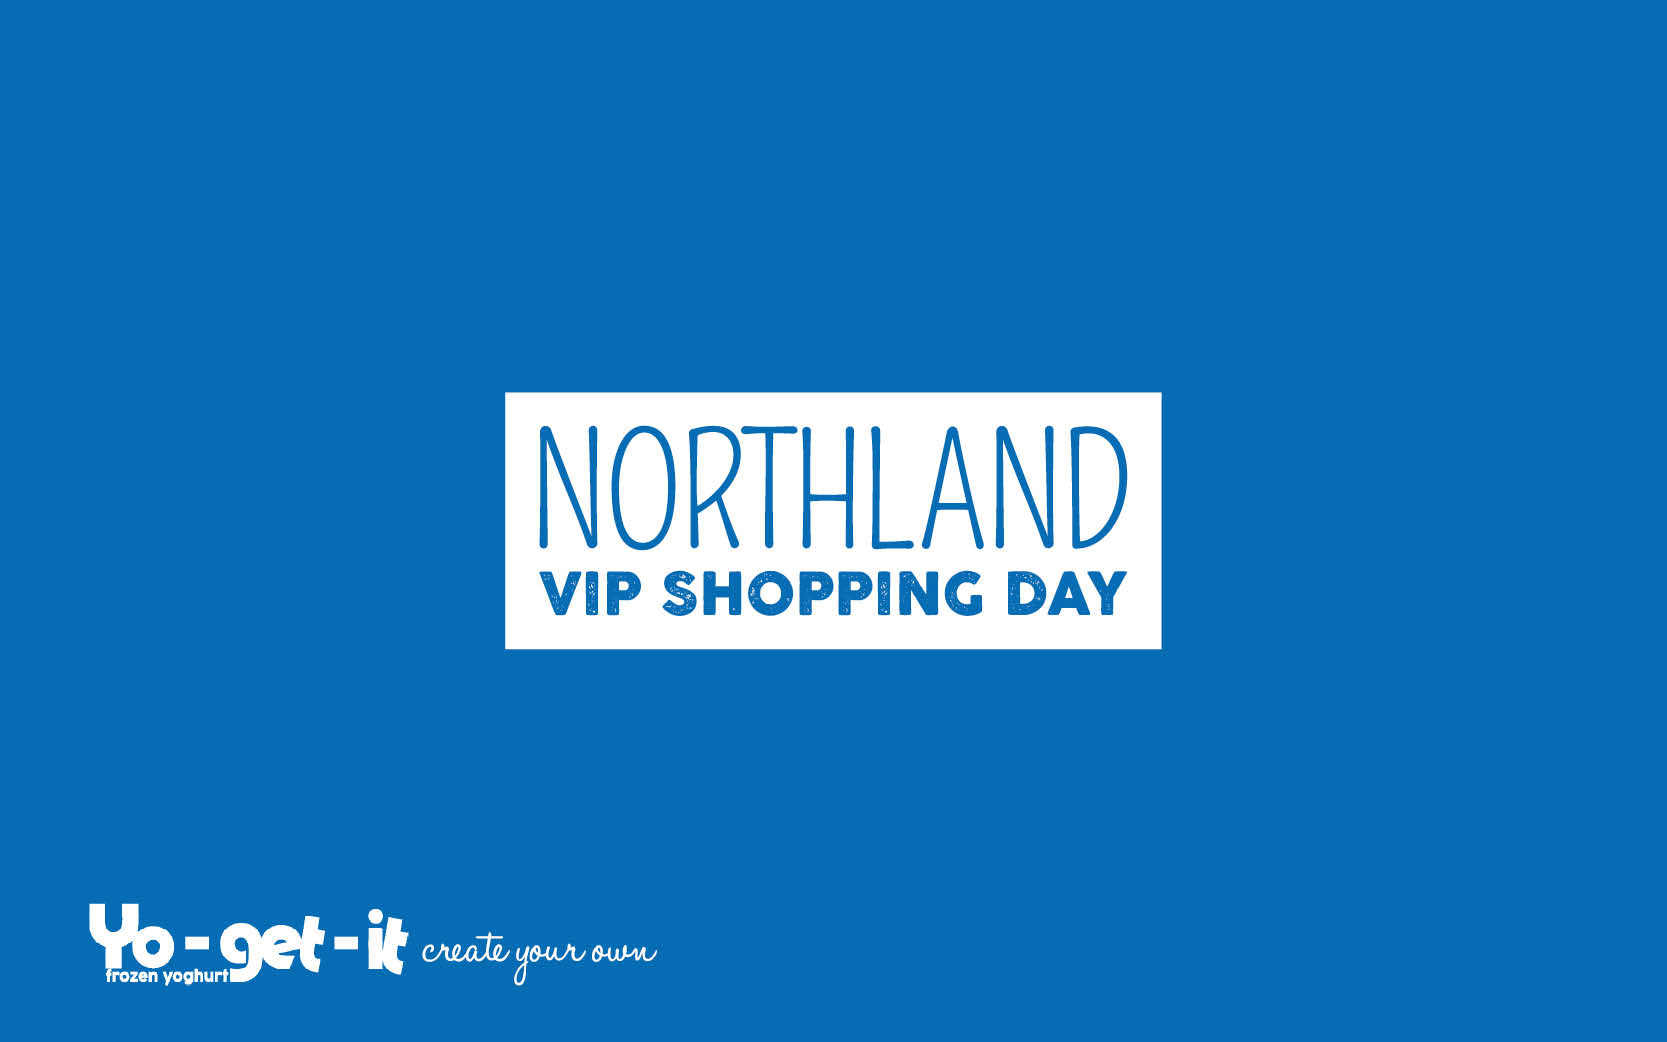 Northland VIP Shopping Day